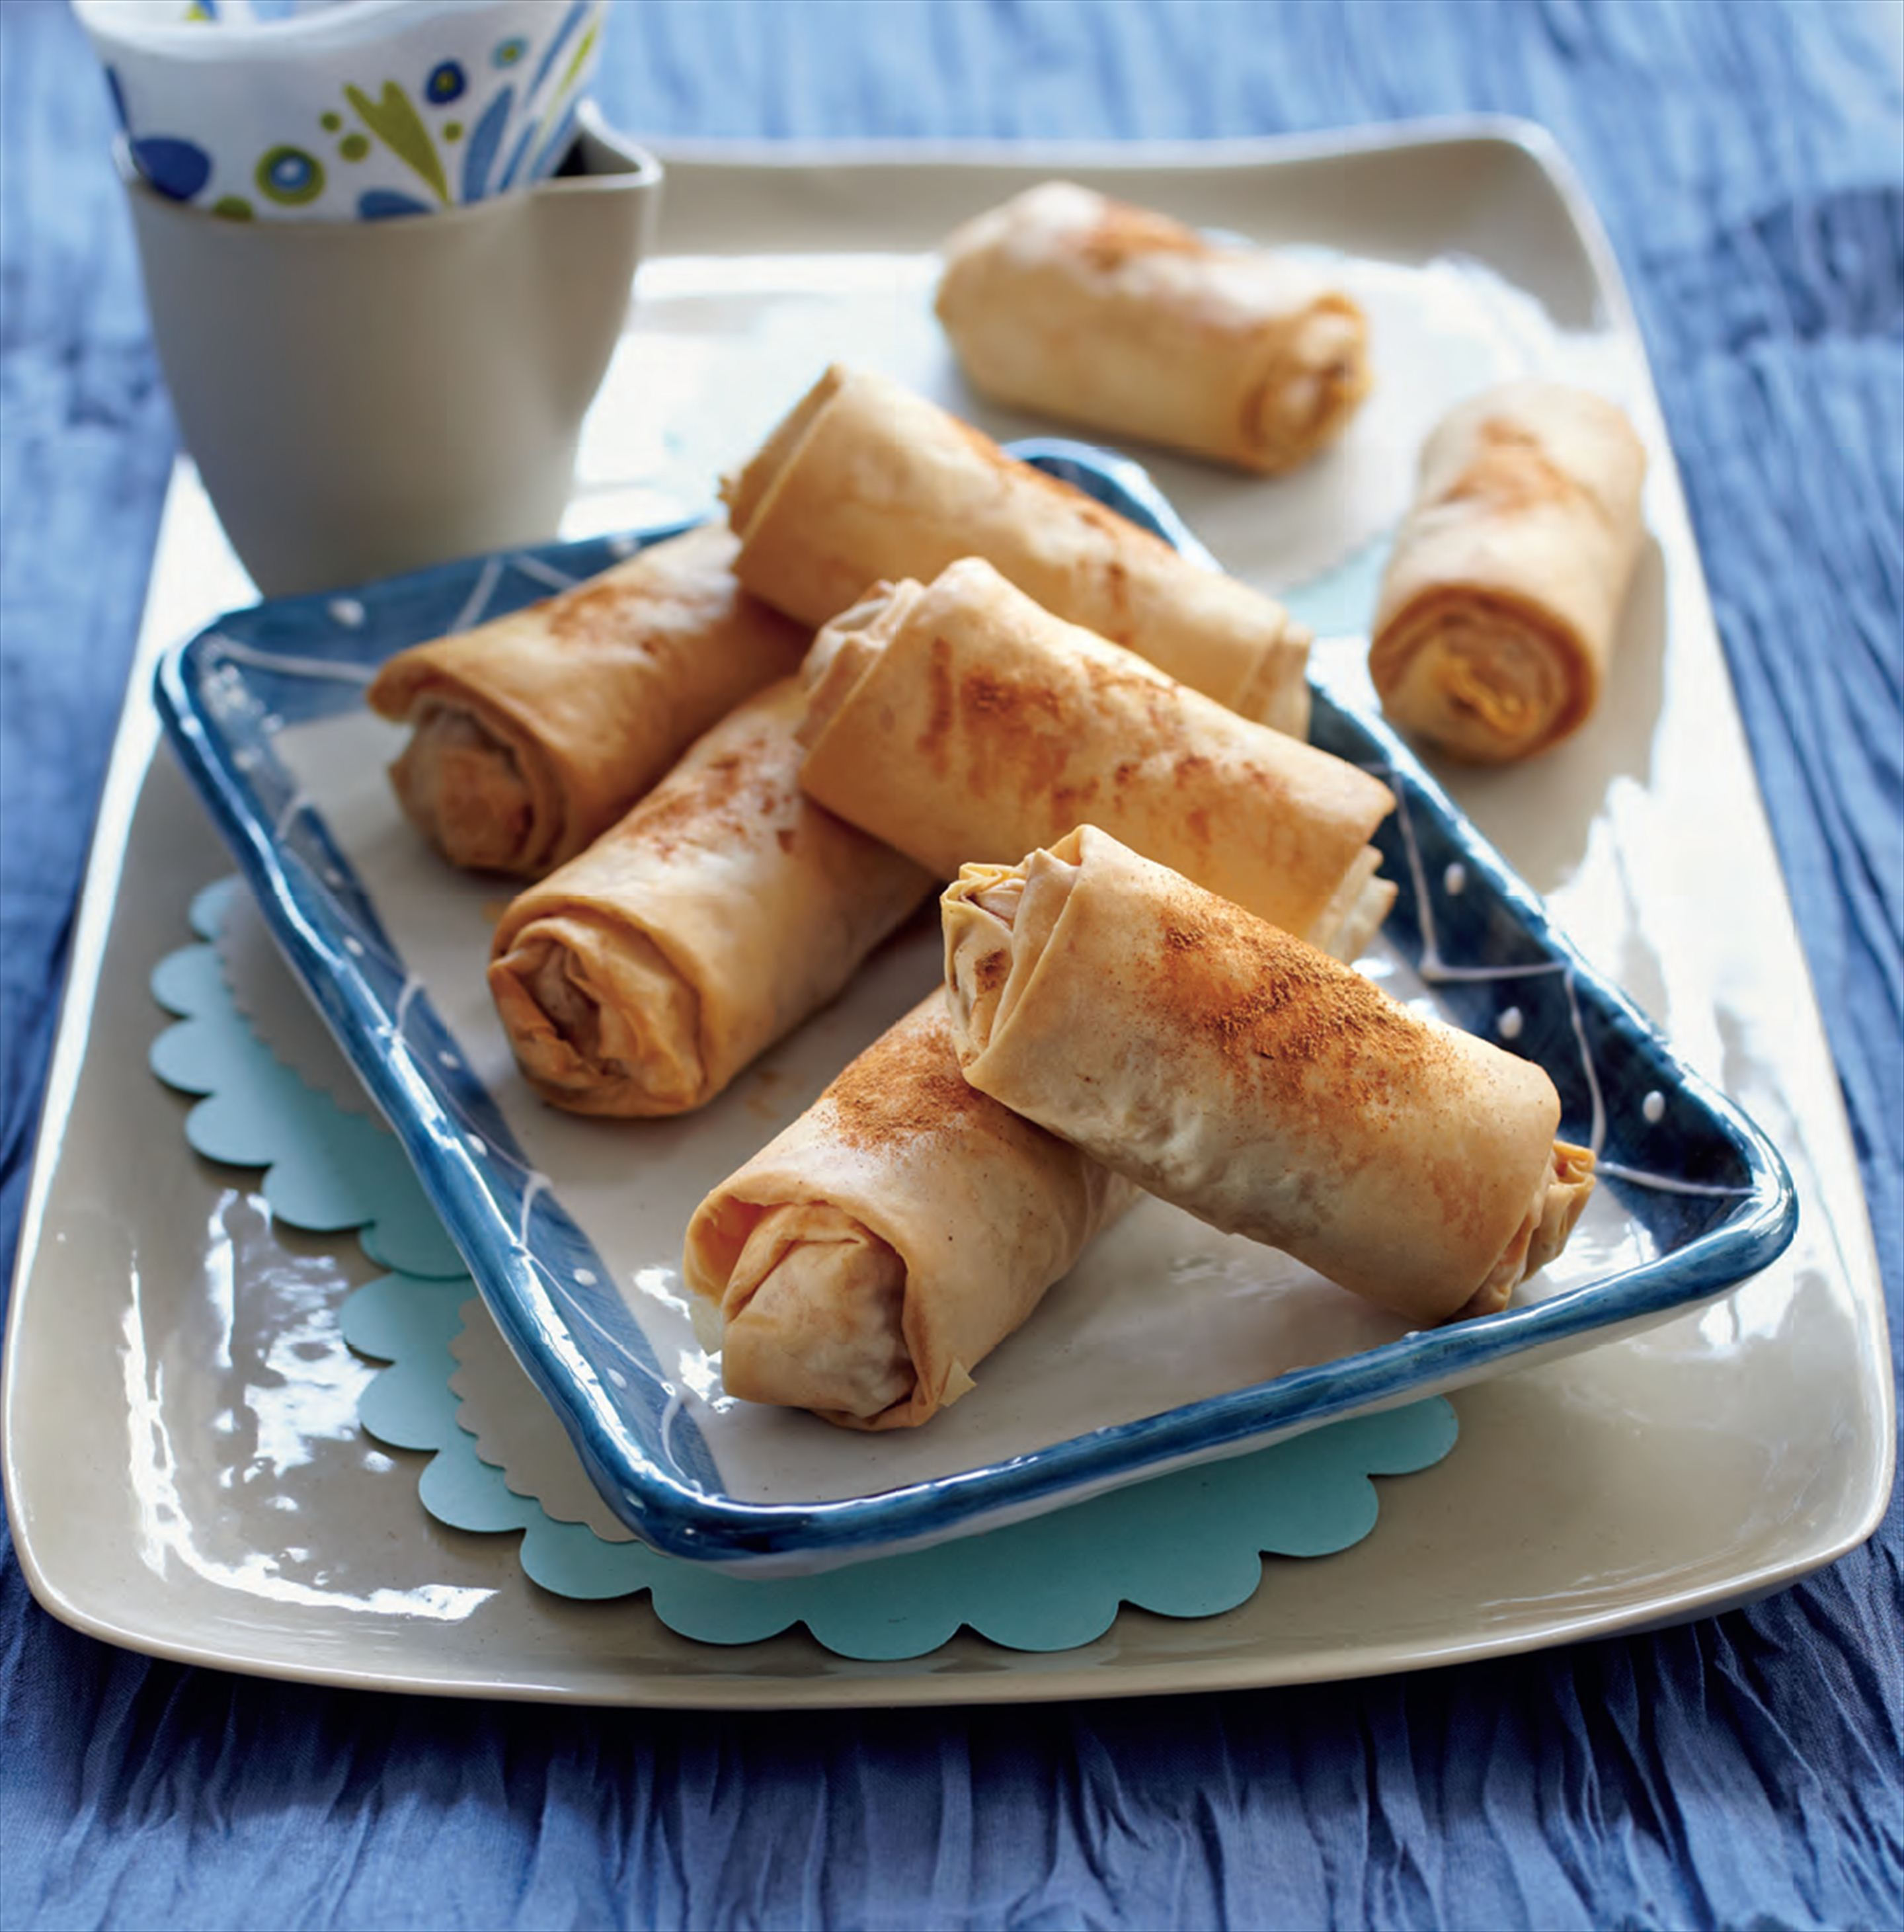 Lamb filo rolls with cinnamon and currants